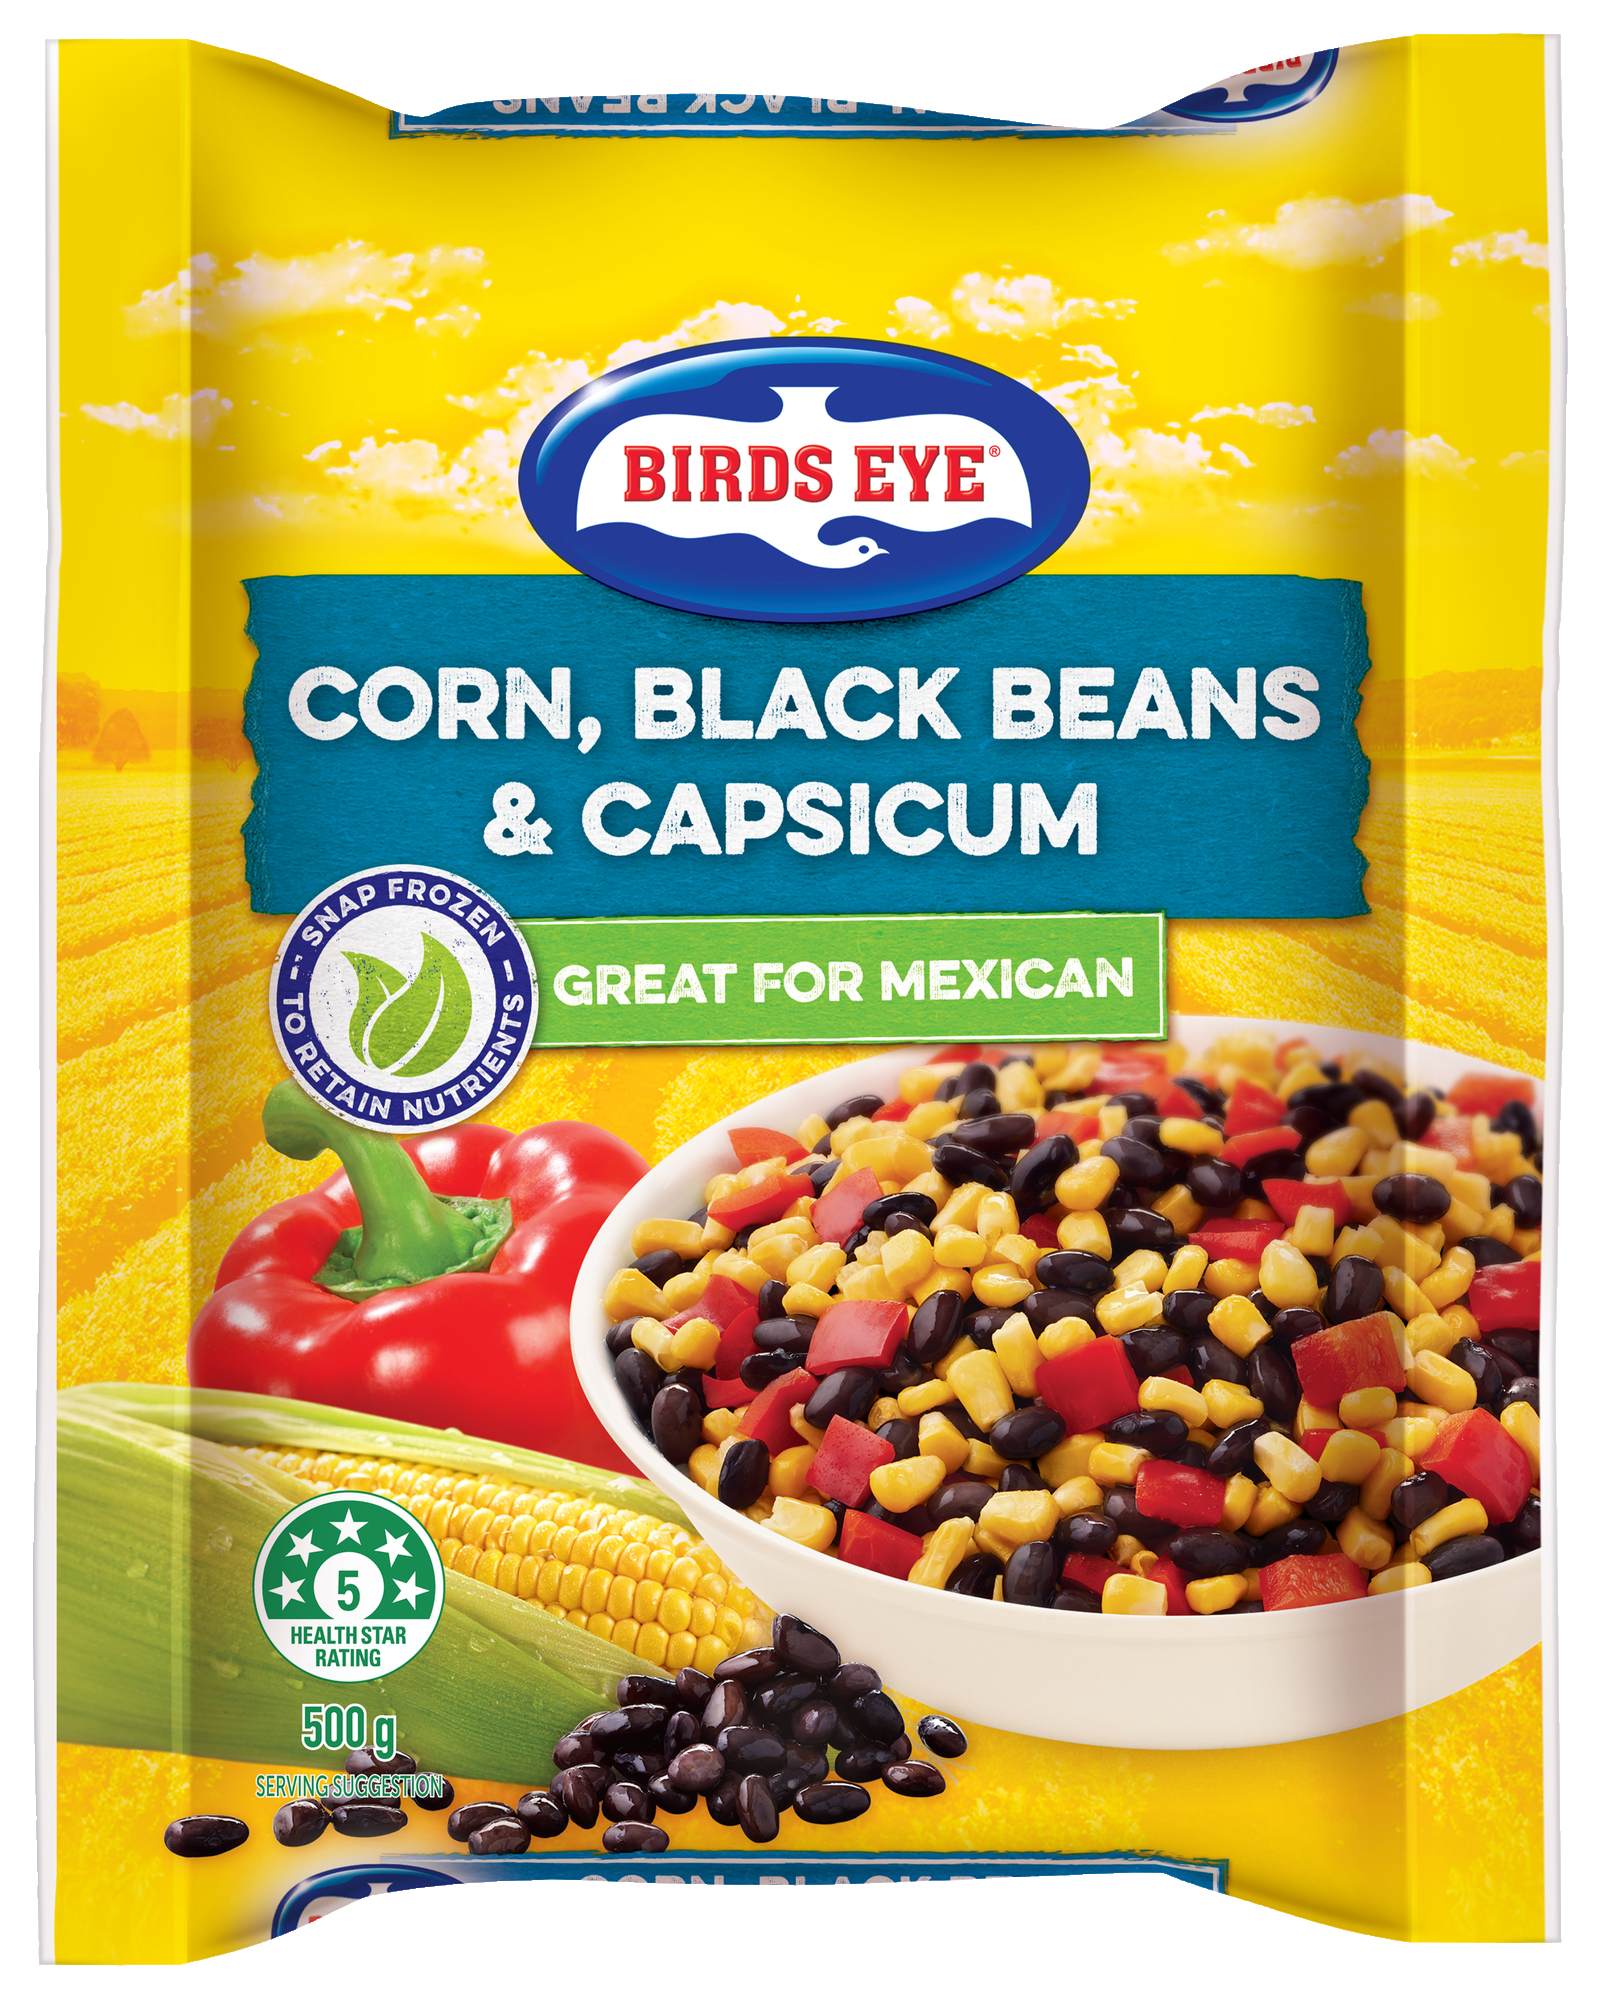 Corn, black beans and capsicum 500g